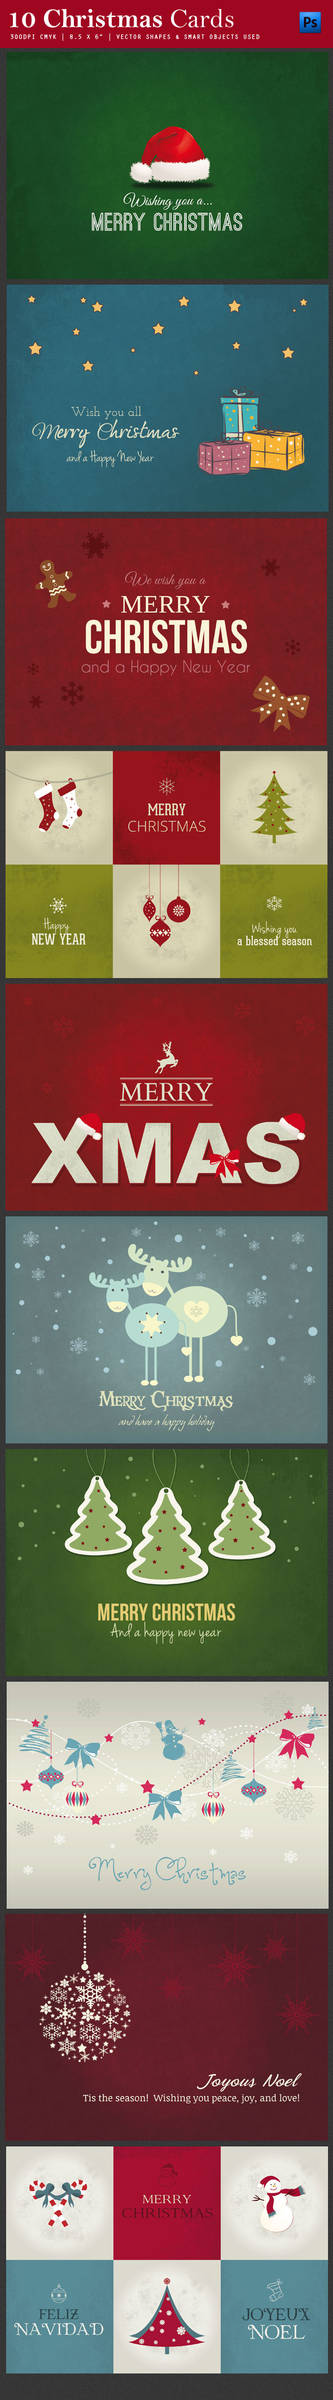 10 Christmas Cards or Backgrounds